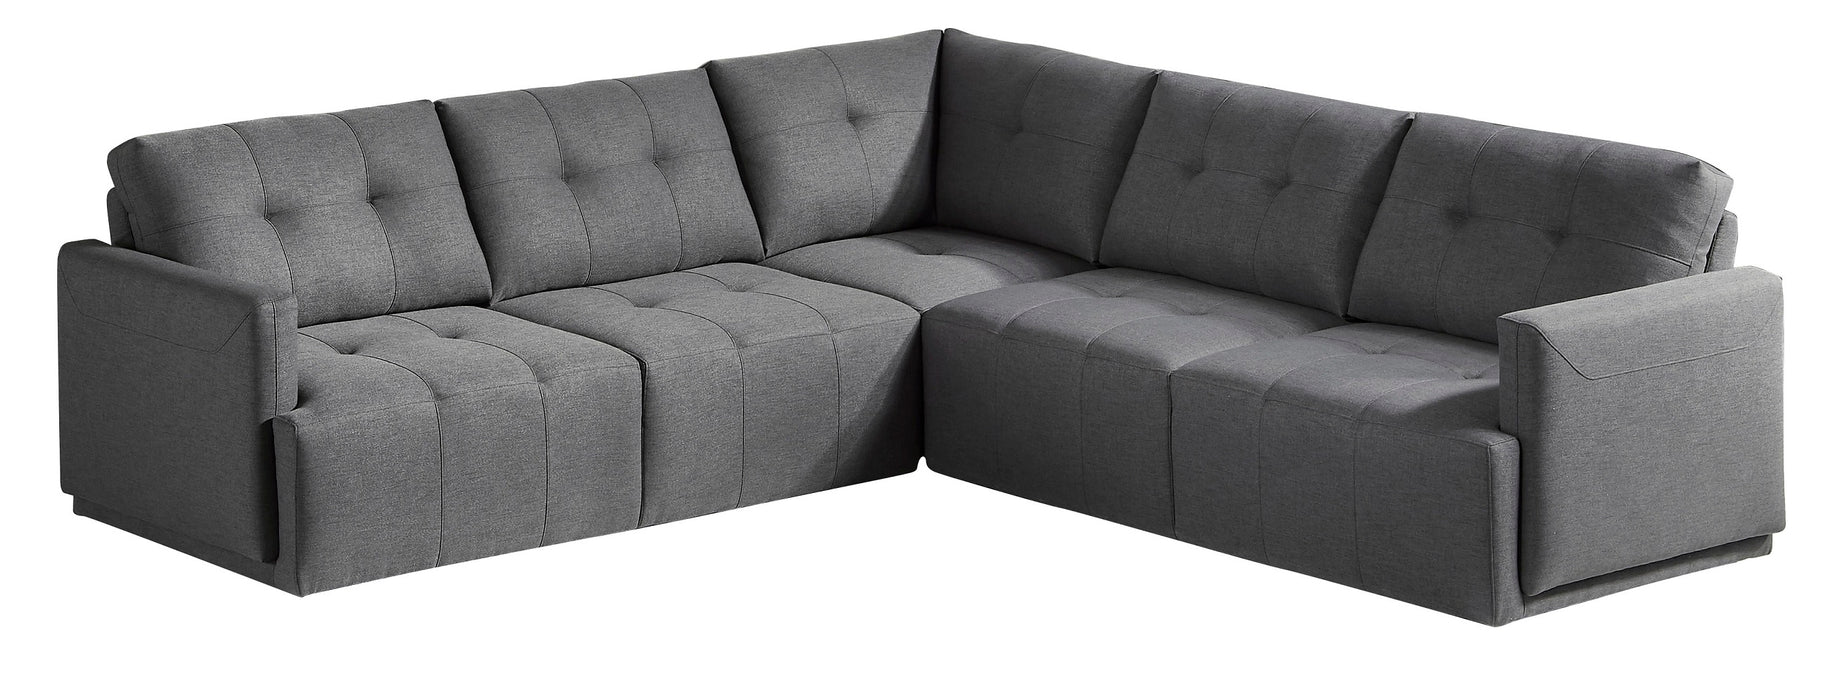 New Classic Furniture | Living Sectional in New Jersey, NJ 6397